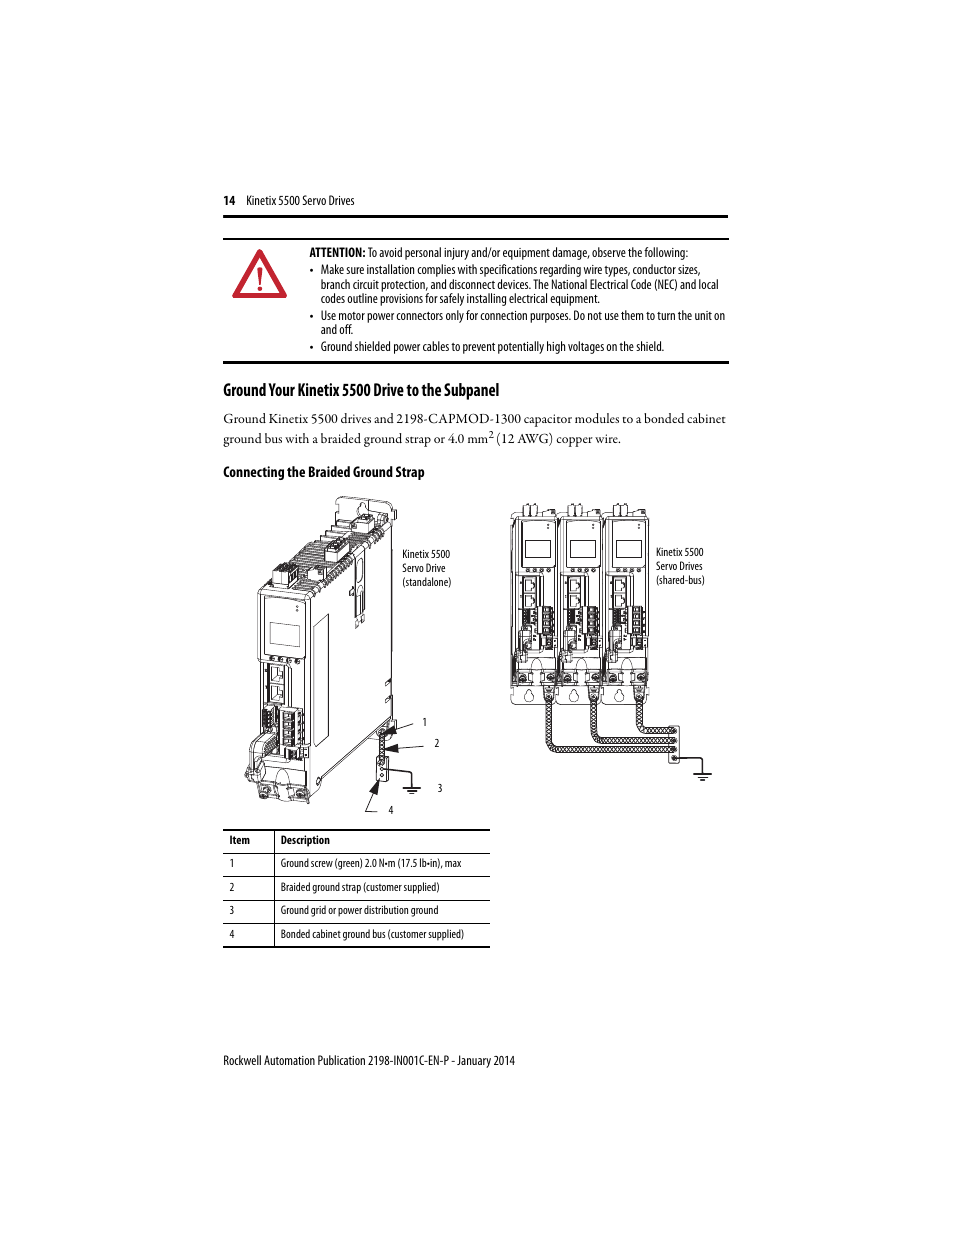 Ground your kinetix 5500 drive to the subpanel rockwell automation ground your kinetix 5500 drive to the subpanel rockwell automation 2198 hxxx kinetix 5500 servo drives installation instructions user manual page 14 greentooth Image collections